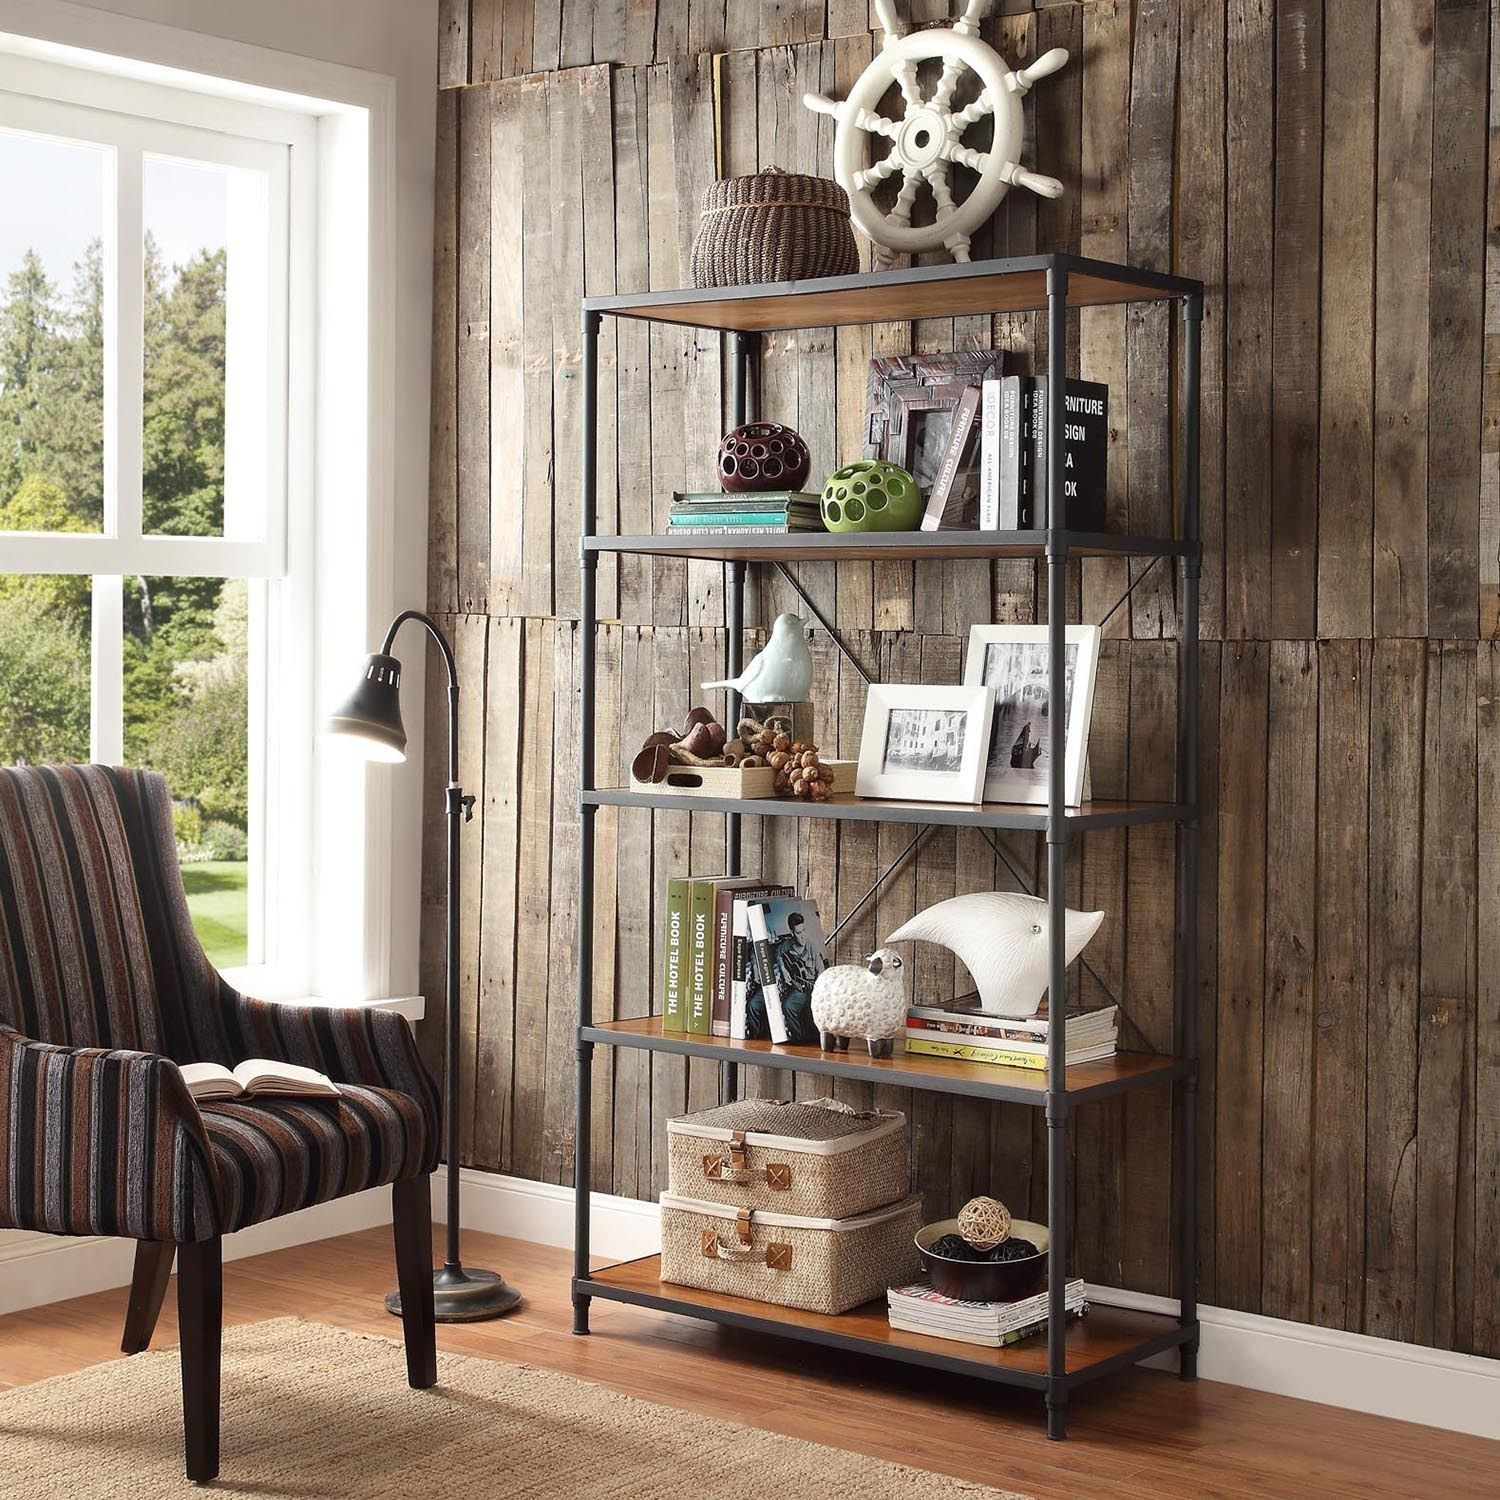 INSPIRE Q Harrison Industrial Rustic Pipe Frame Shelf Media Tower -  Overstock Shopping - Great Deals